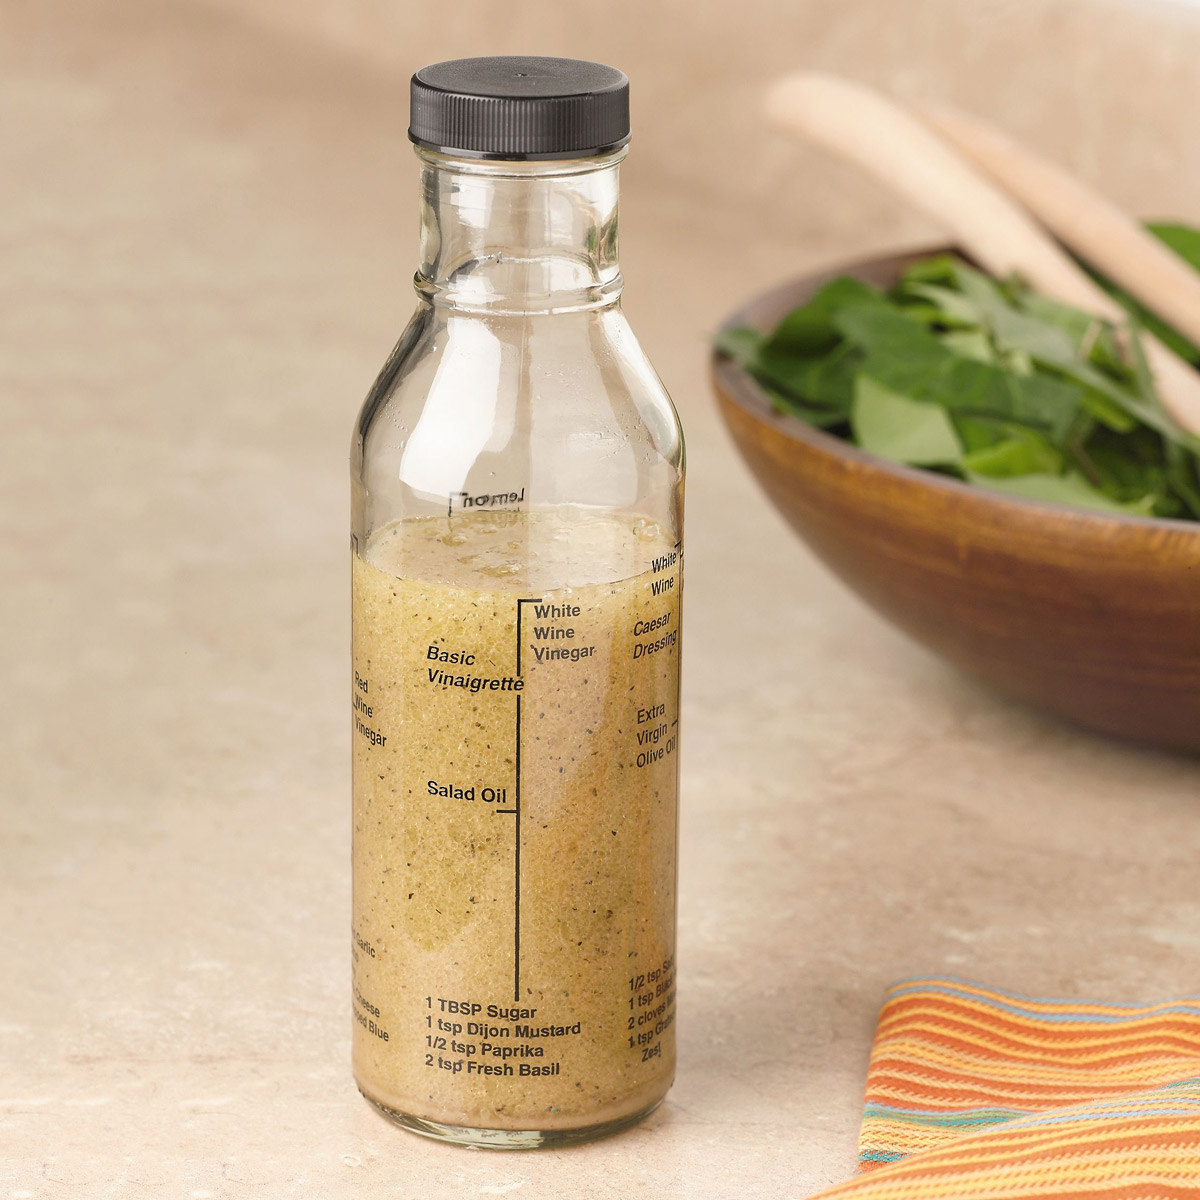 Kolder All In One Salad Dressing Bottle For Mixing